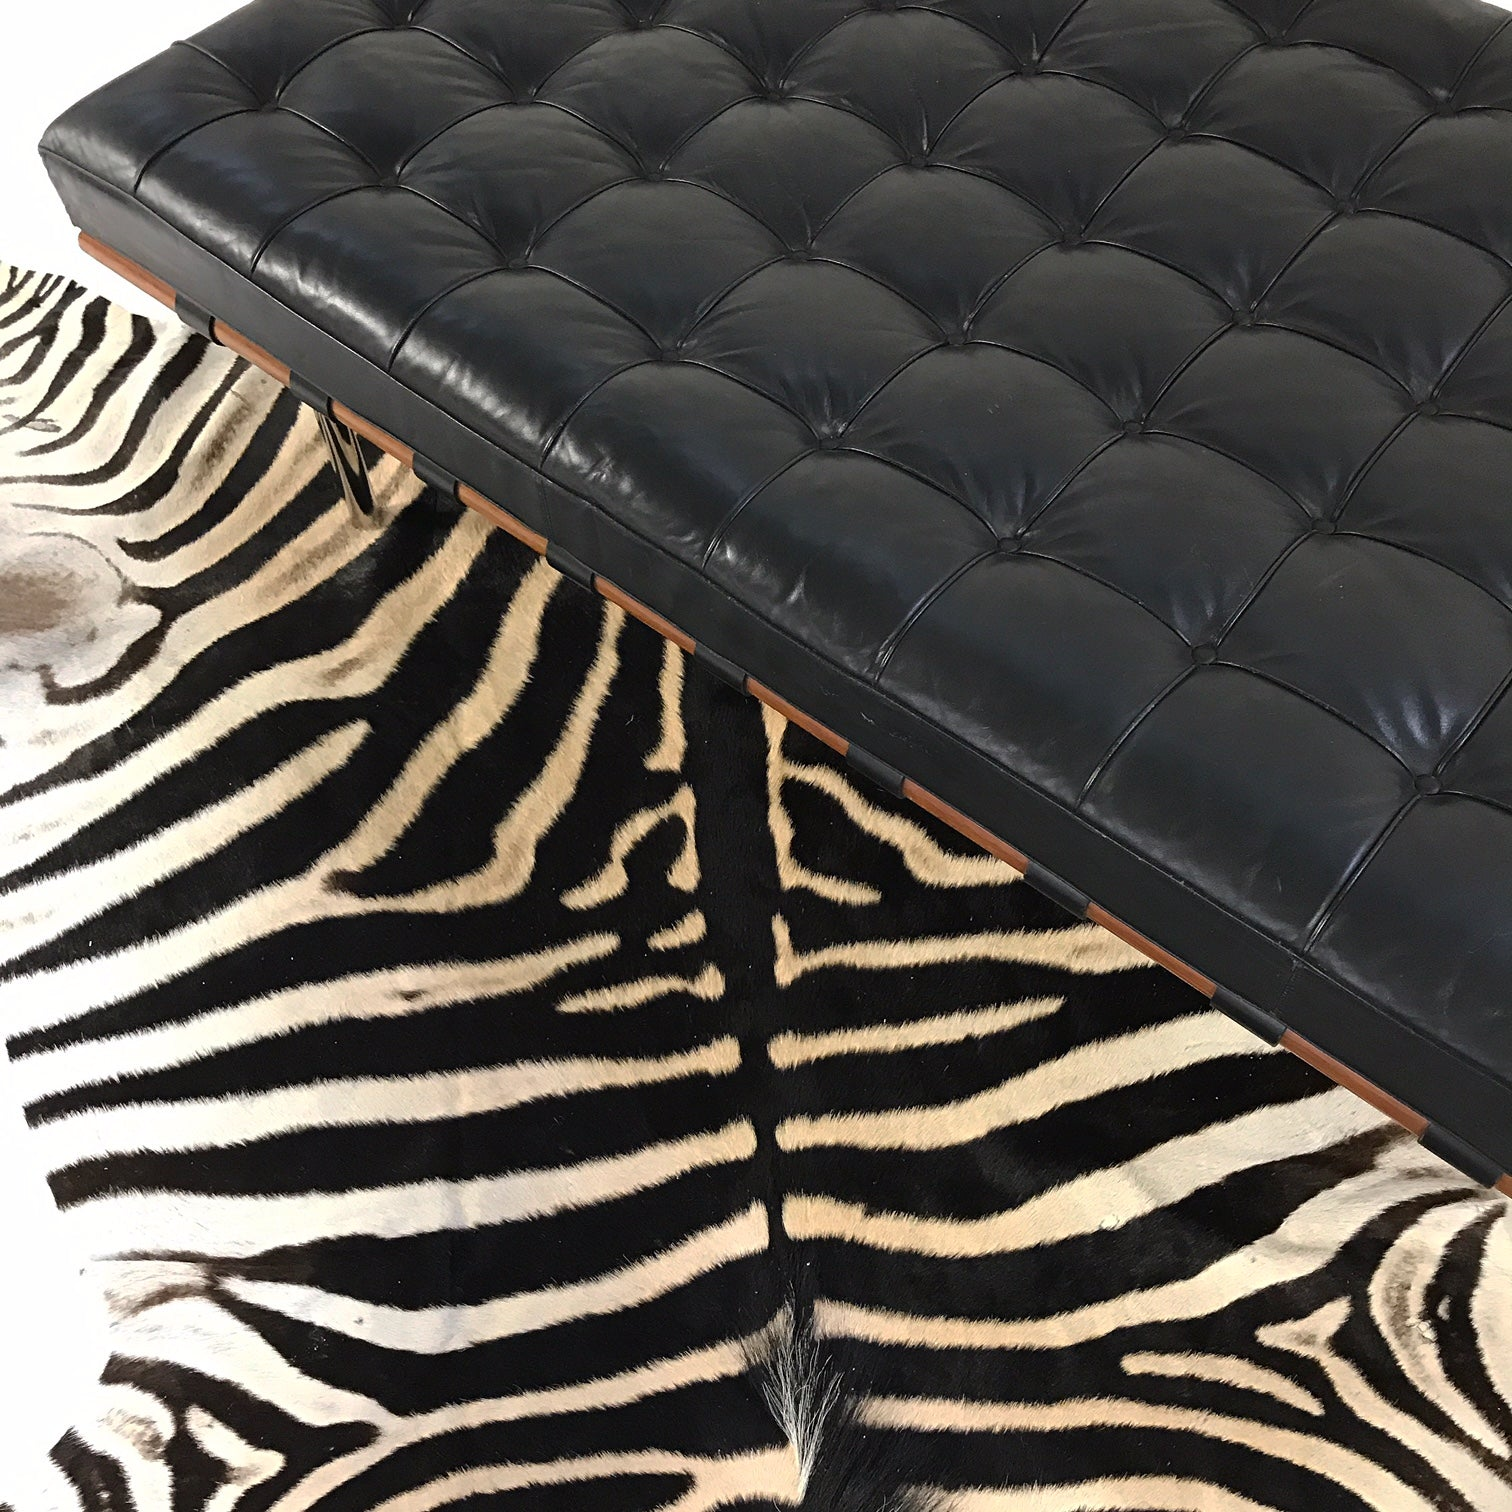 Barcelona Daybed with Zebra Hide Rug - FORSYTH